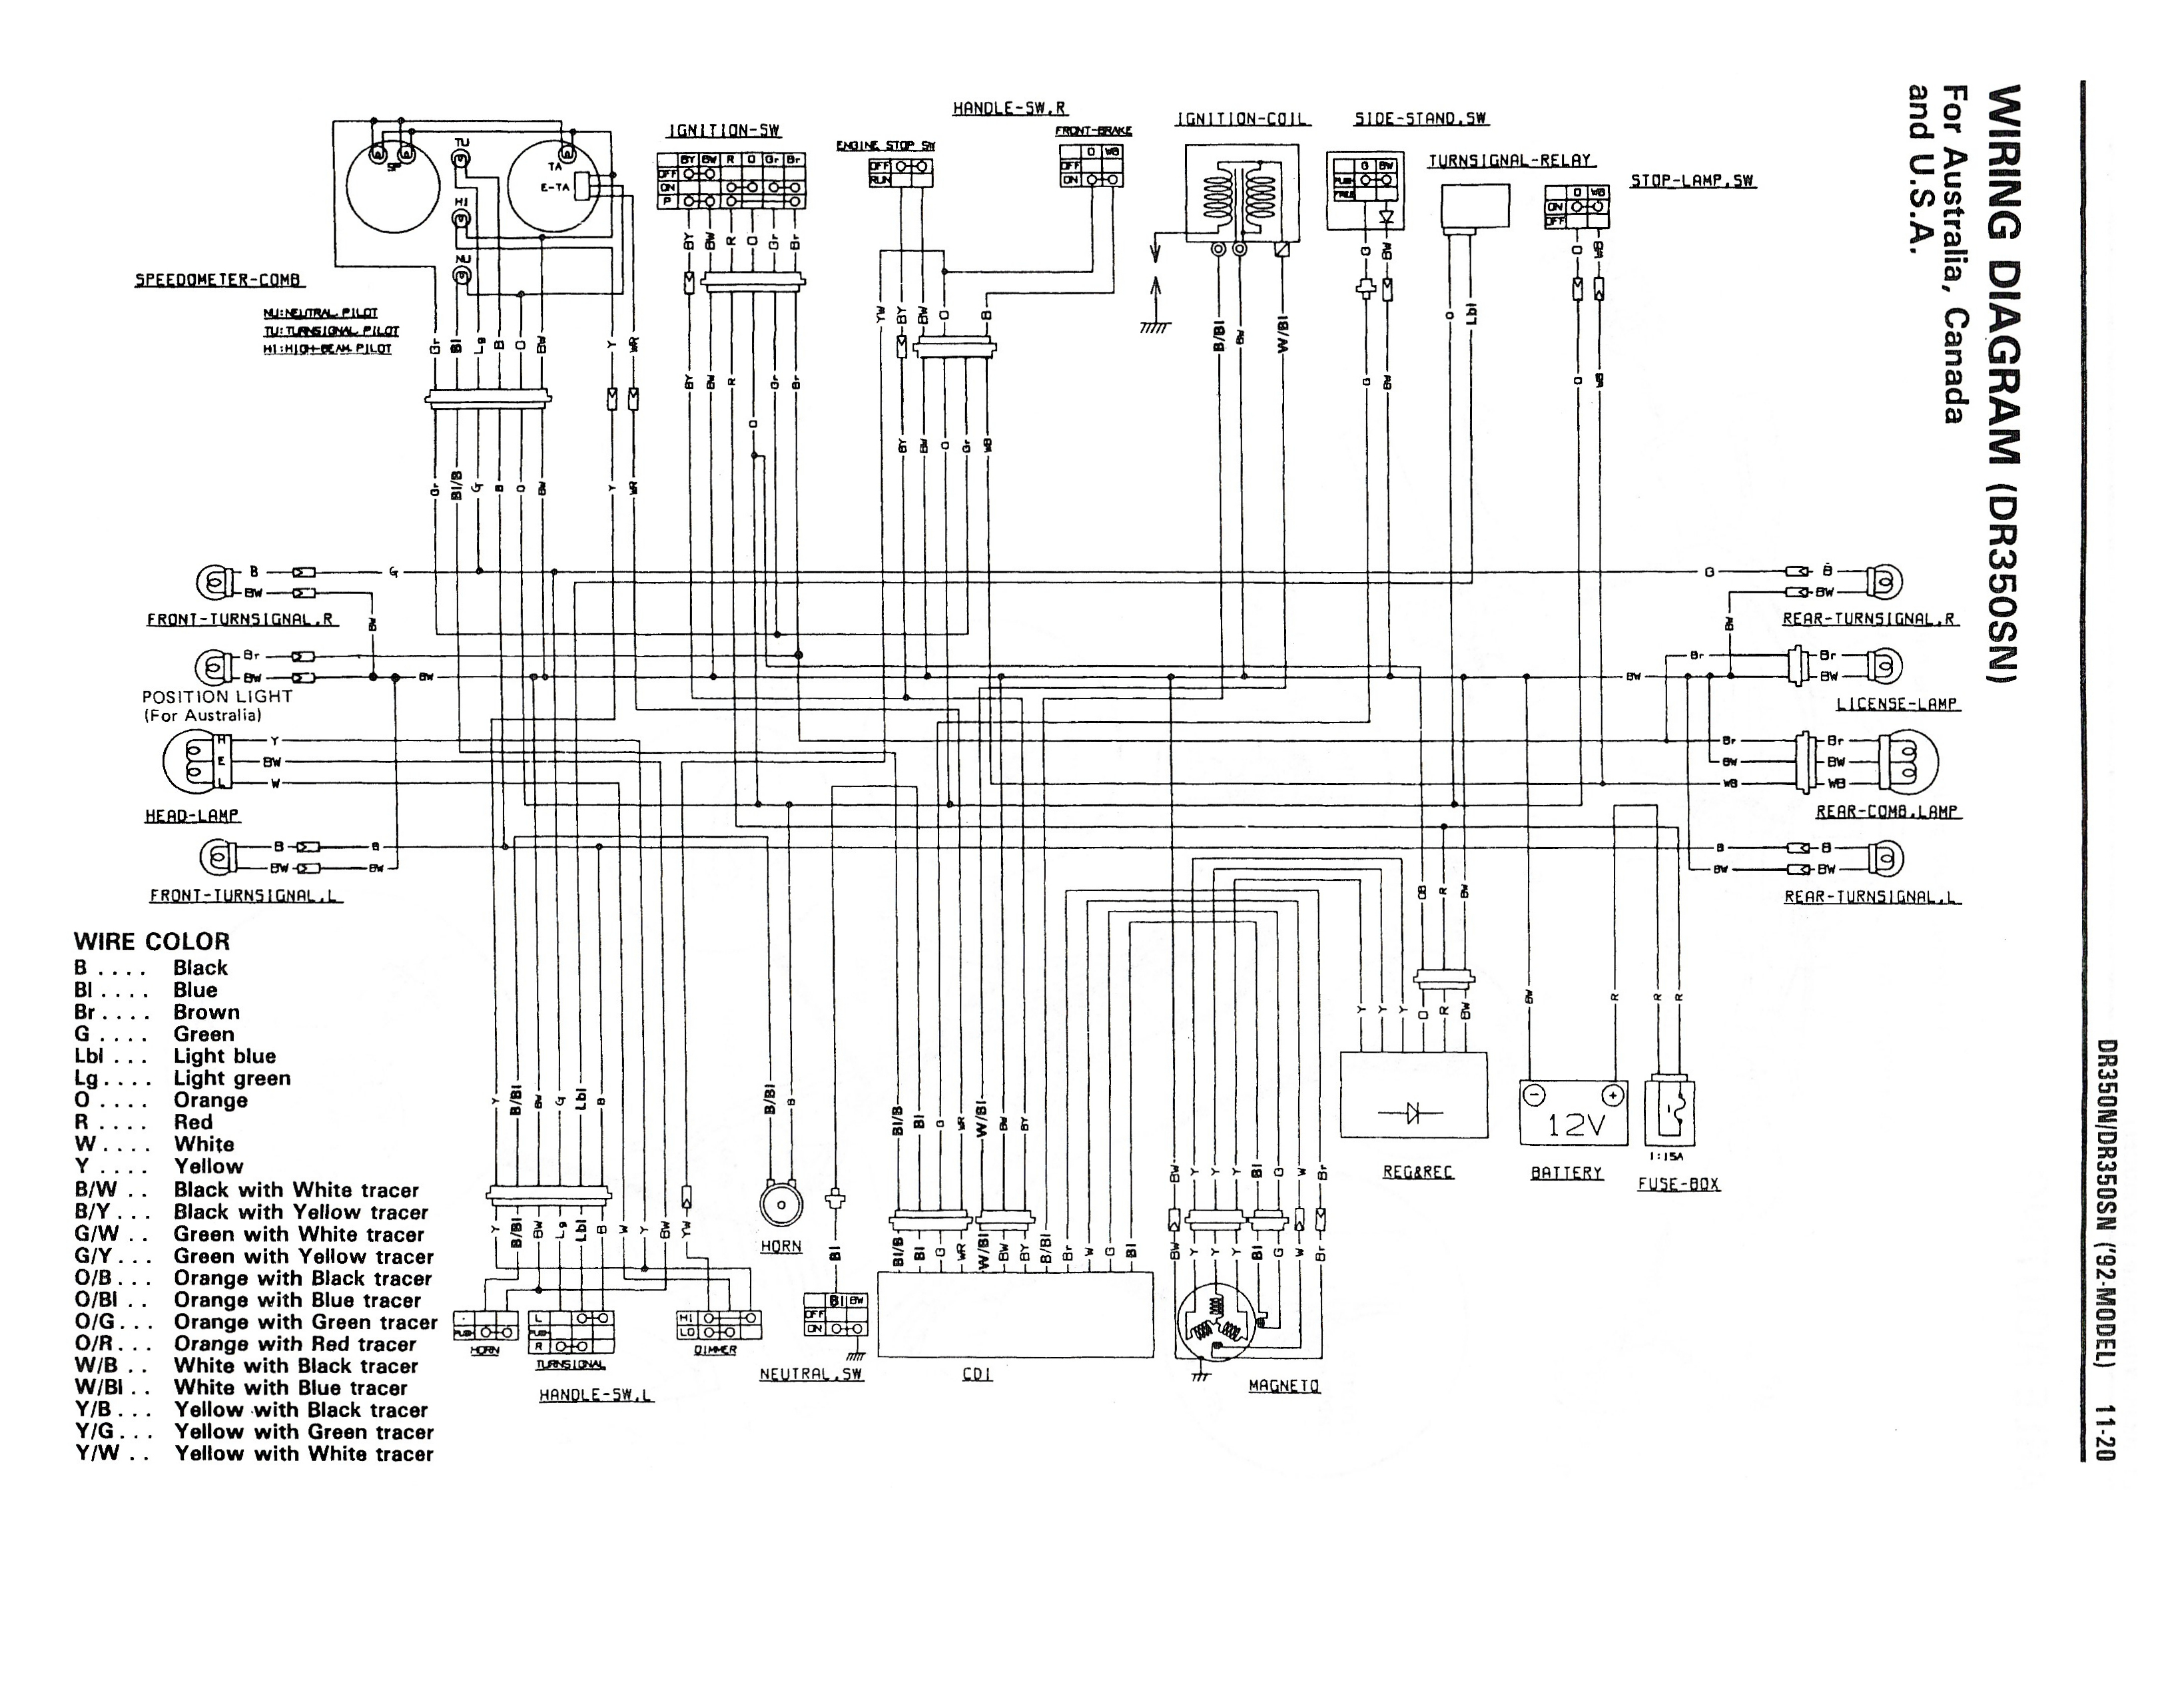 Wiring diagram for the DR350 S (1992 and later models